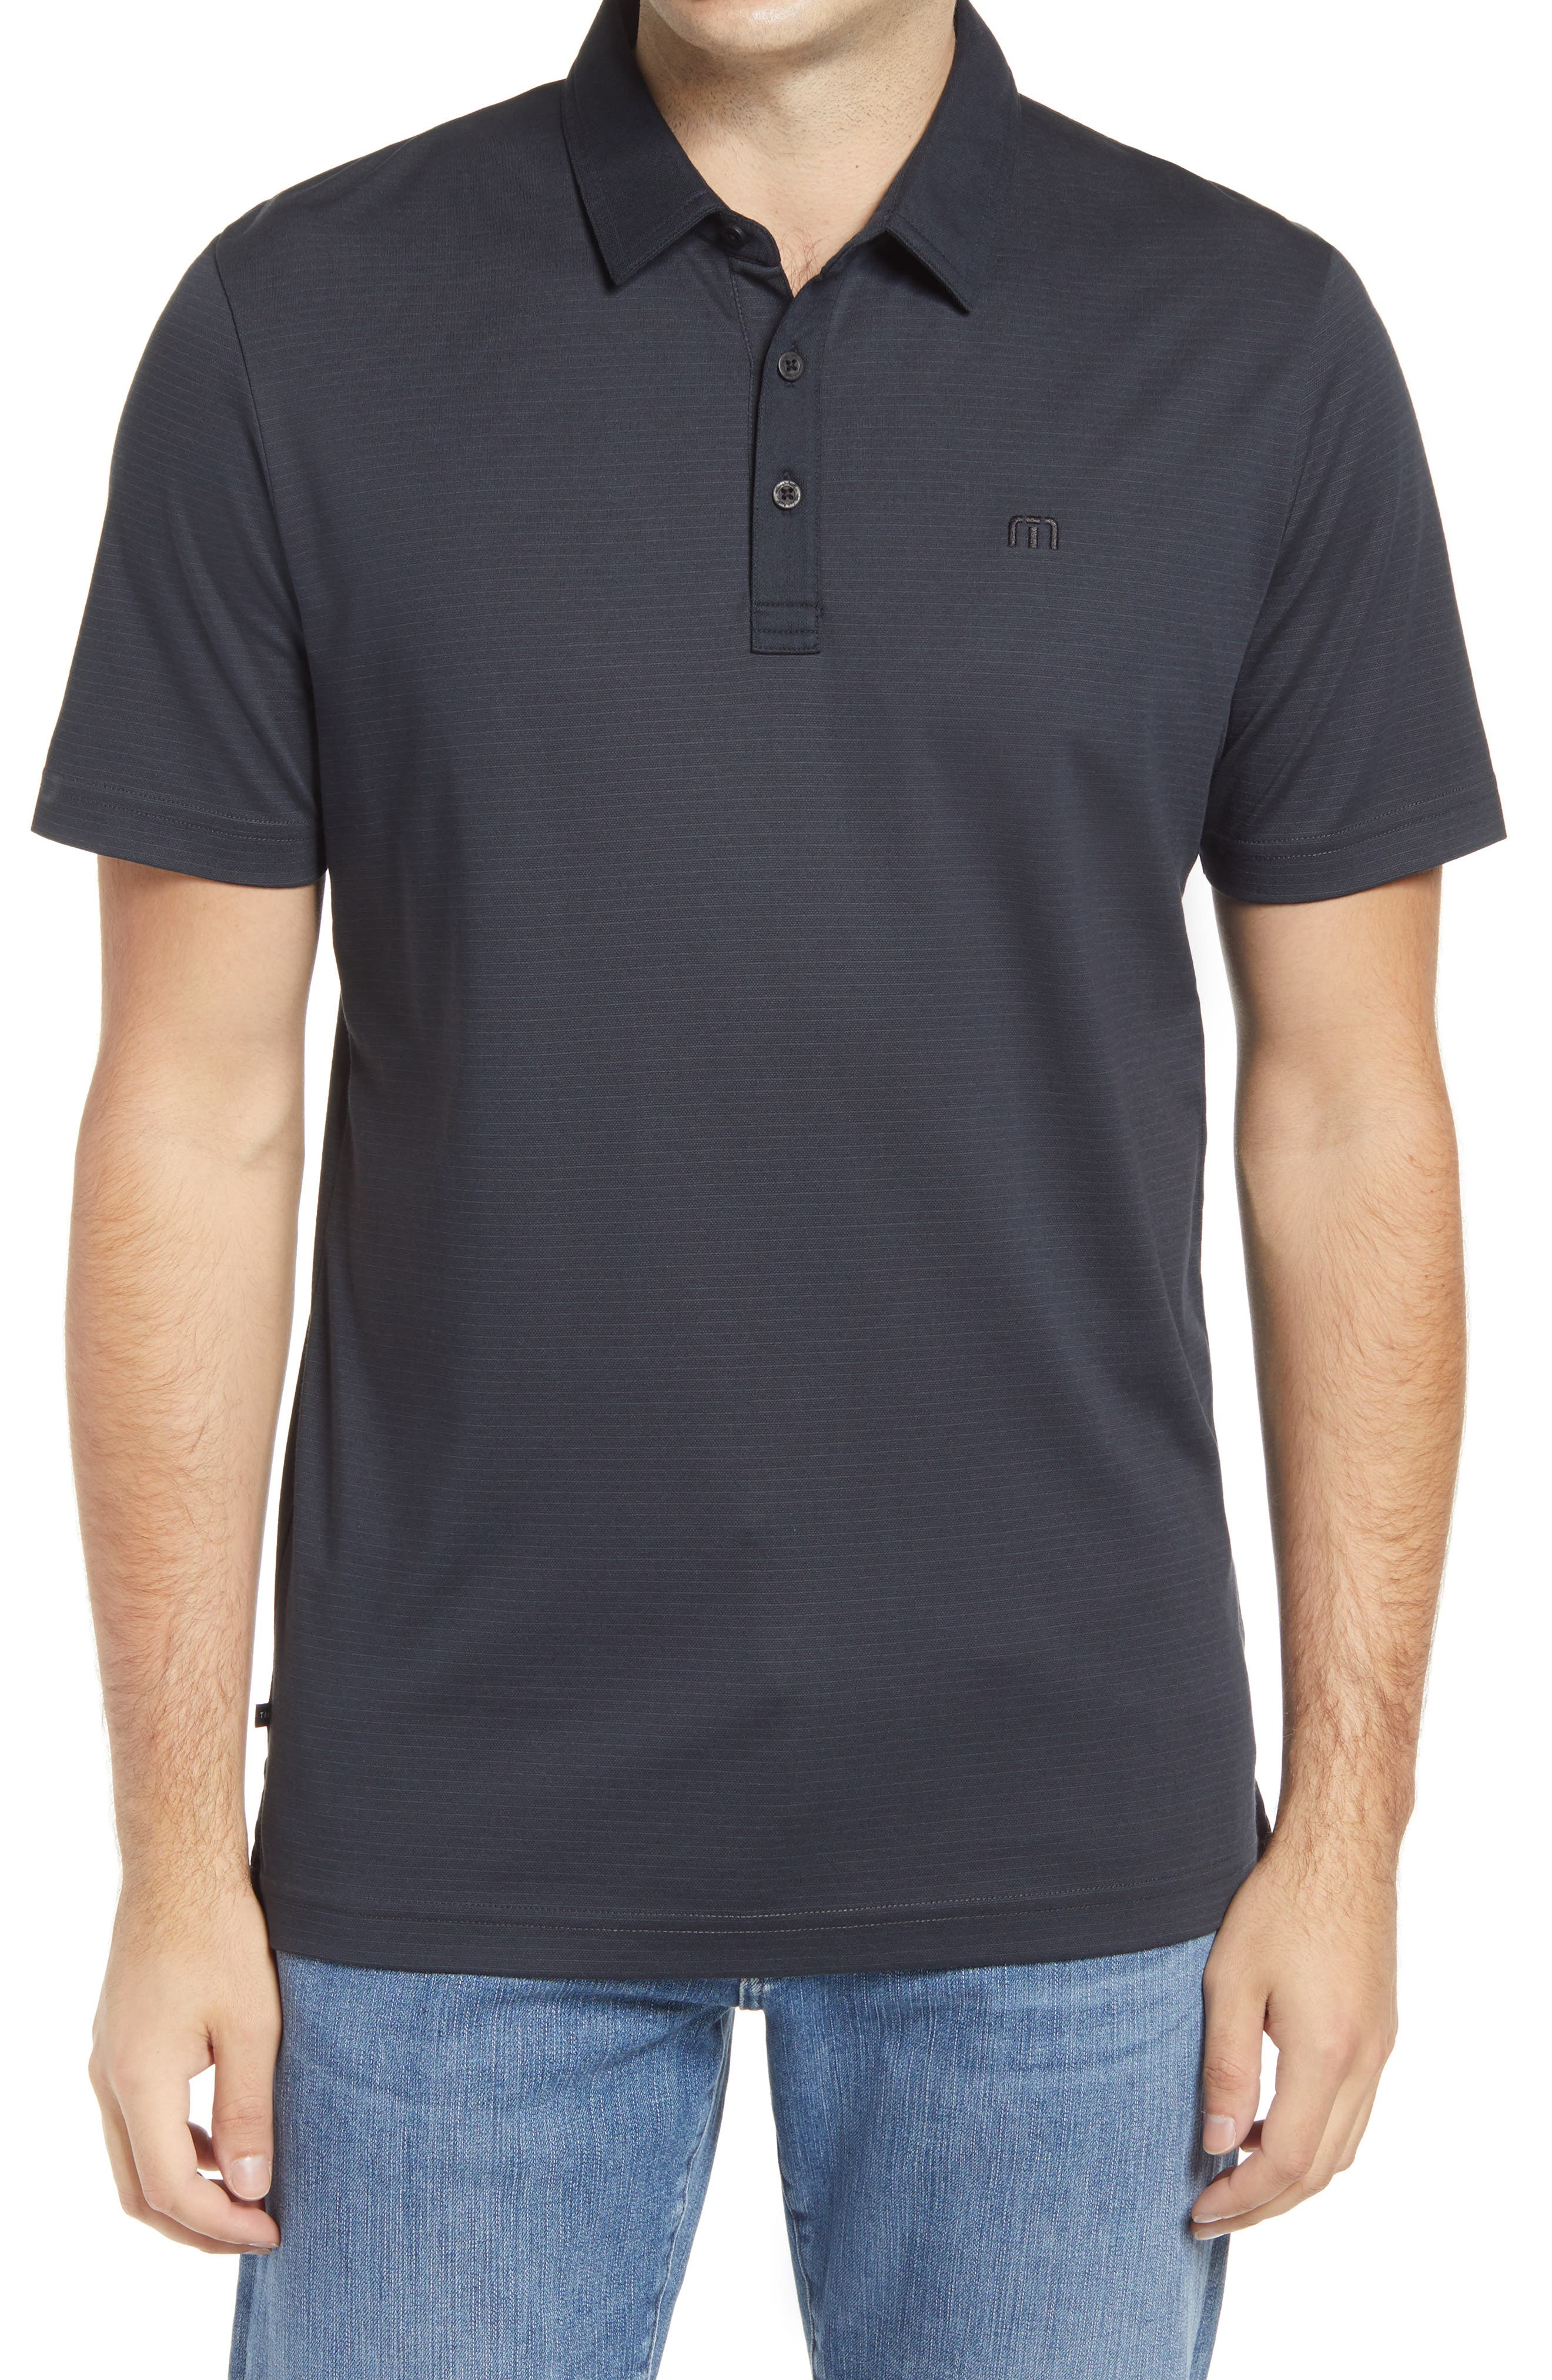 Chalky pinstripes ring an all-activity polo cut for comfort from a breathable cotton-blend pique knit with solid-color accents finishing the placket and collar. Style Name: Travismathew Faris Stripe Pique Polo. Style Number: 5835173. Available in stores.